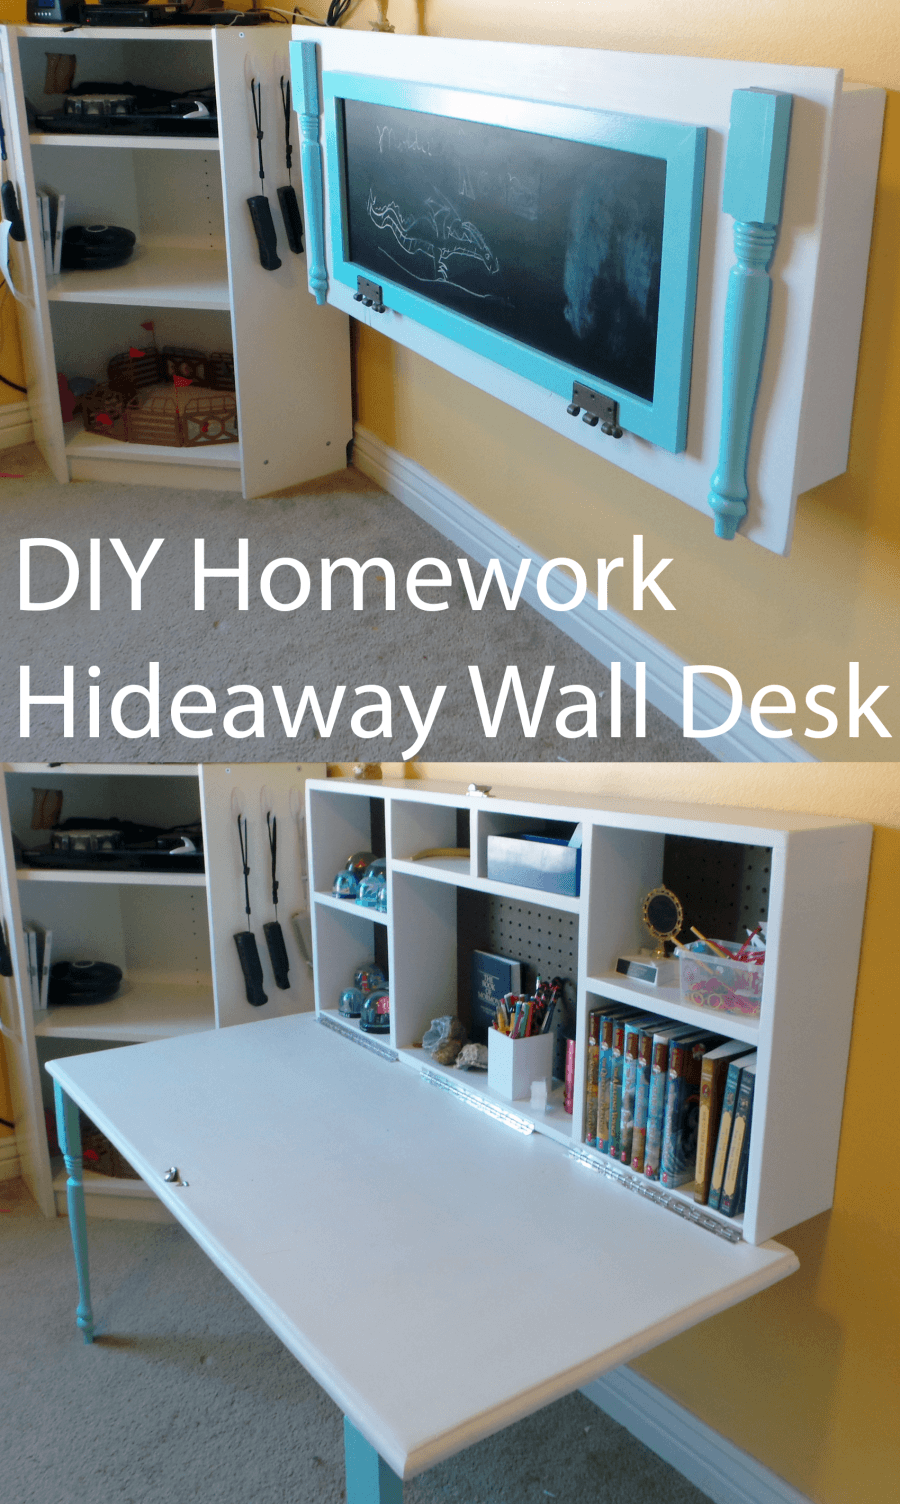 DIY Kids Homework Hideaway Wall Desk Tutorial - DIY Wall Mounted Desk Free Plans & Instructions